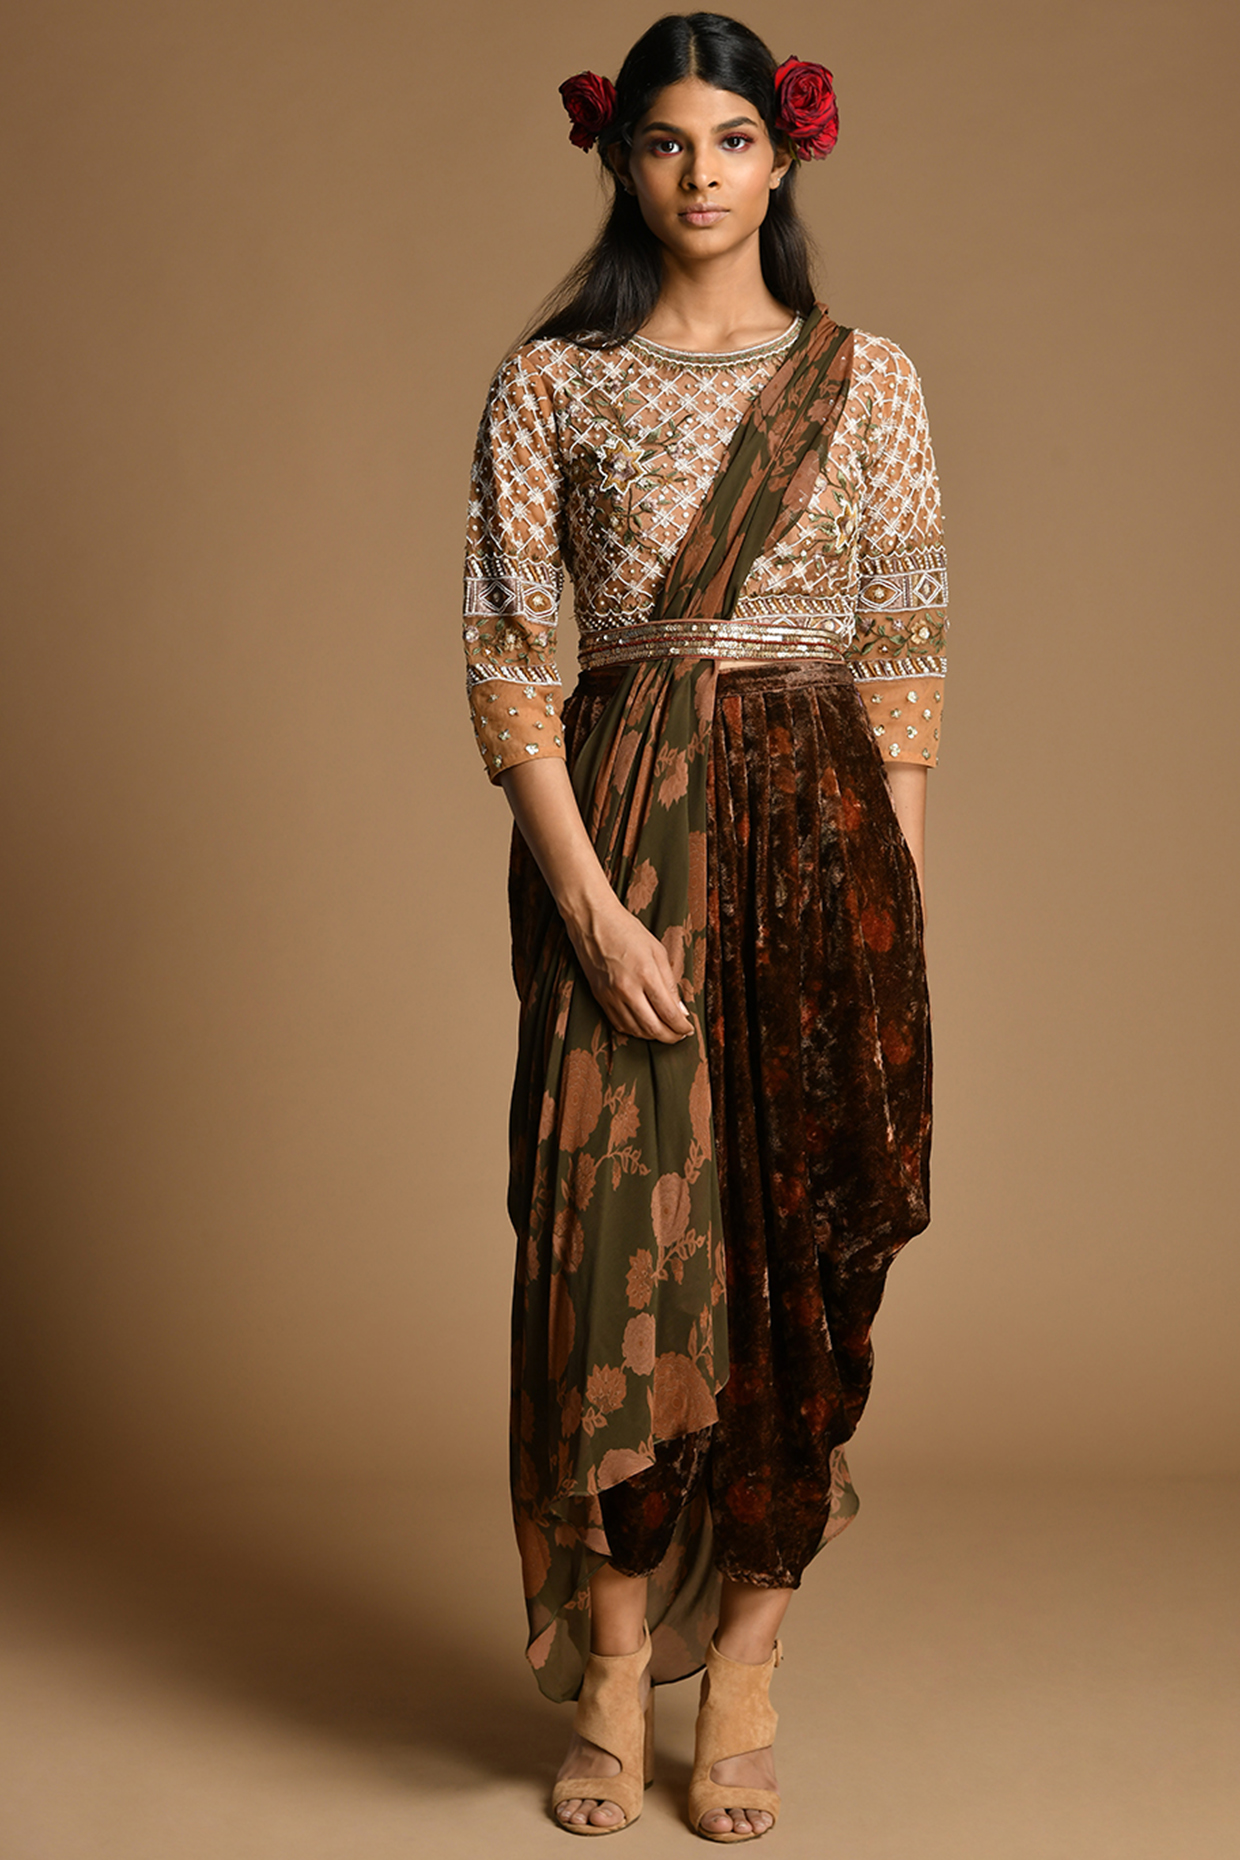 Beige & Multi Colored Embroidered Draped Pant Set by Kalista